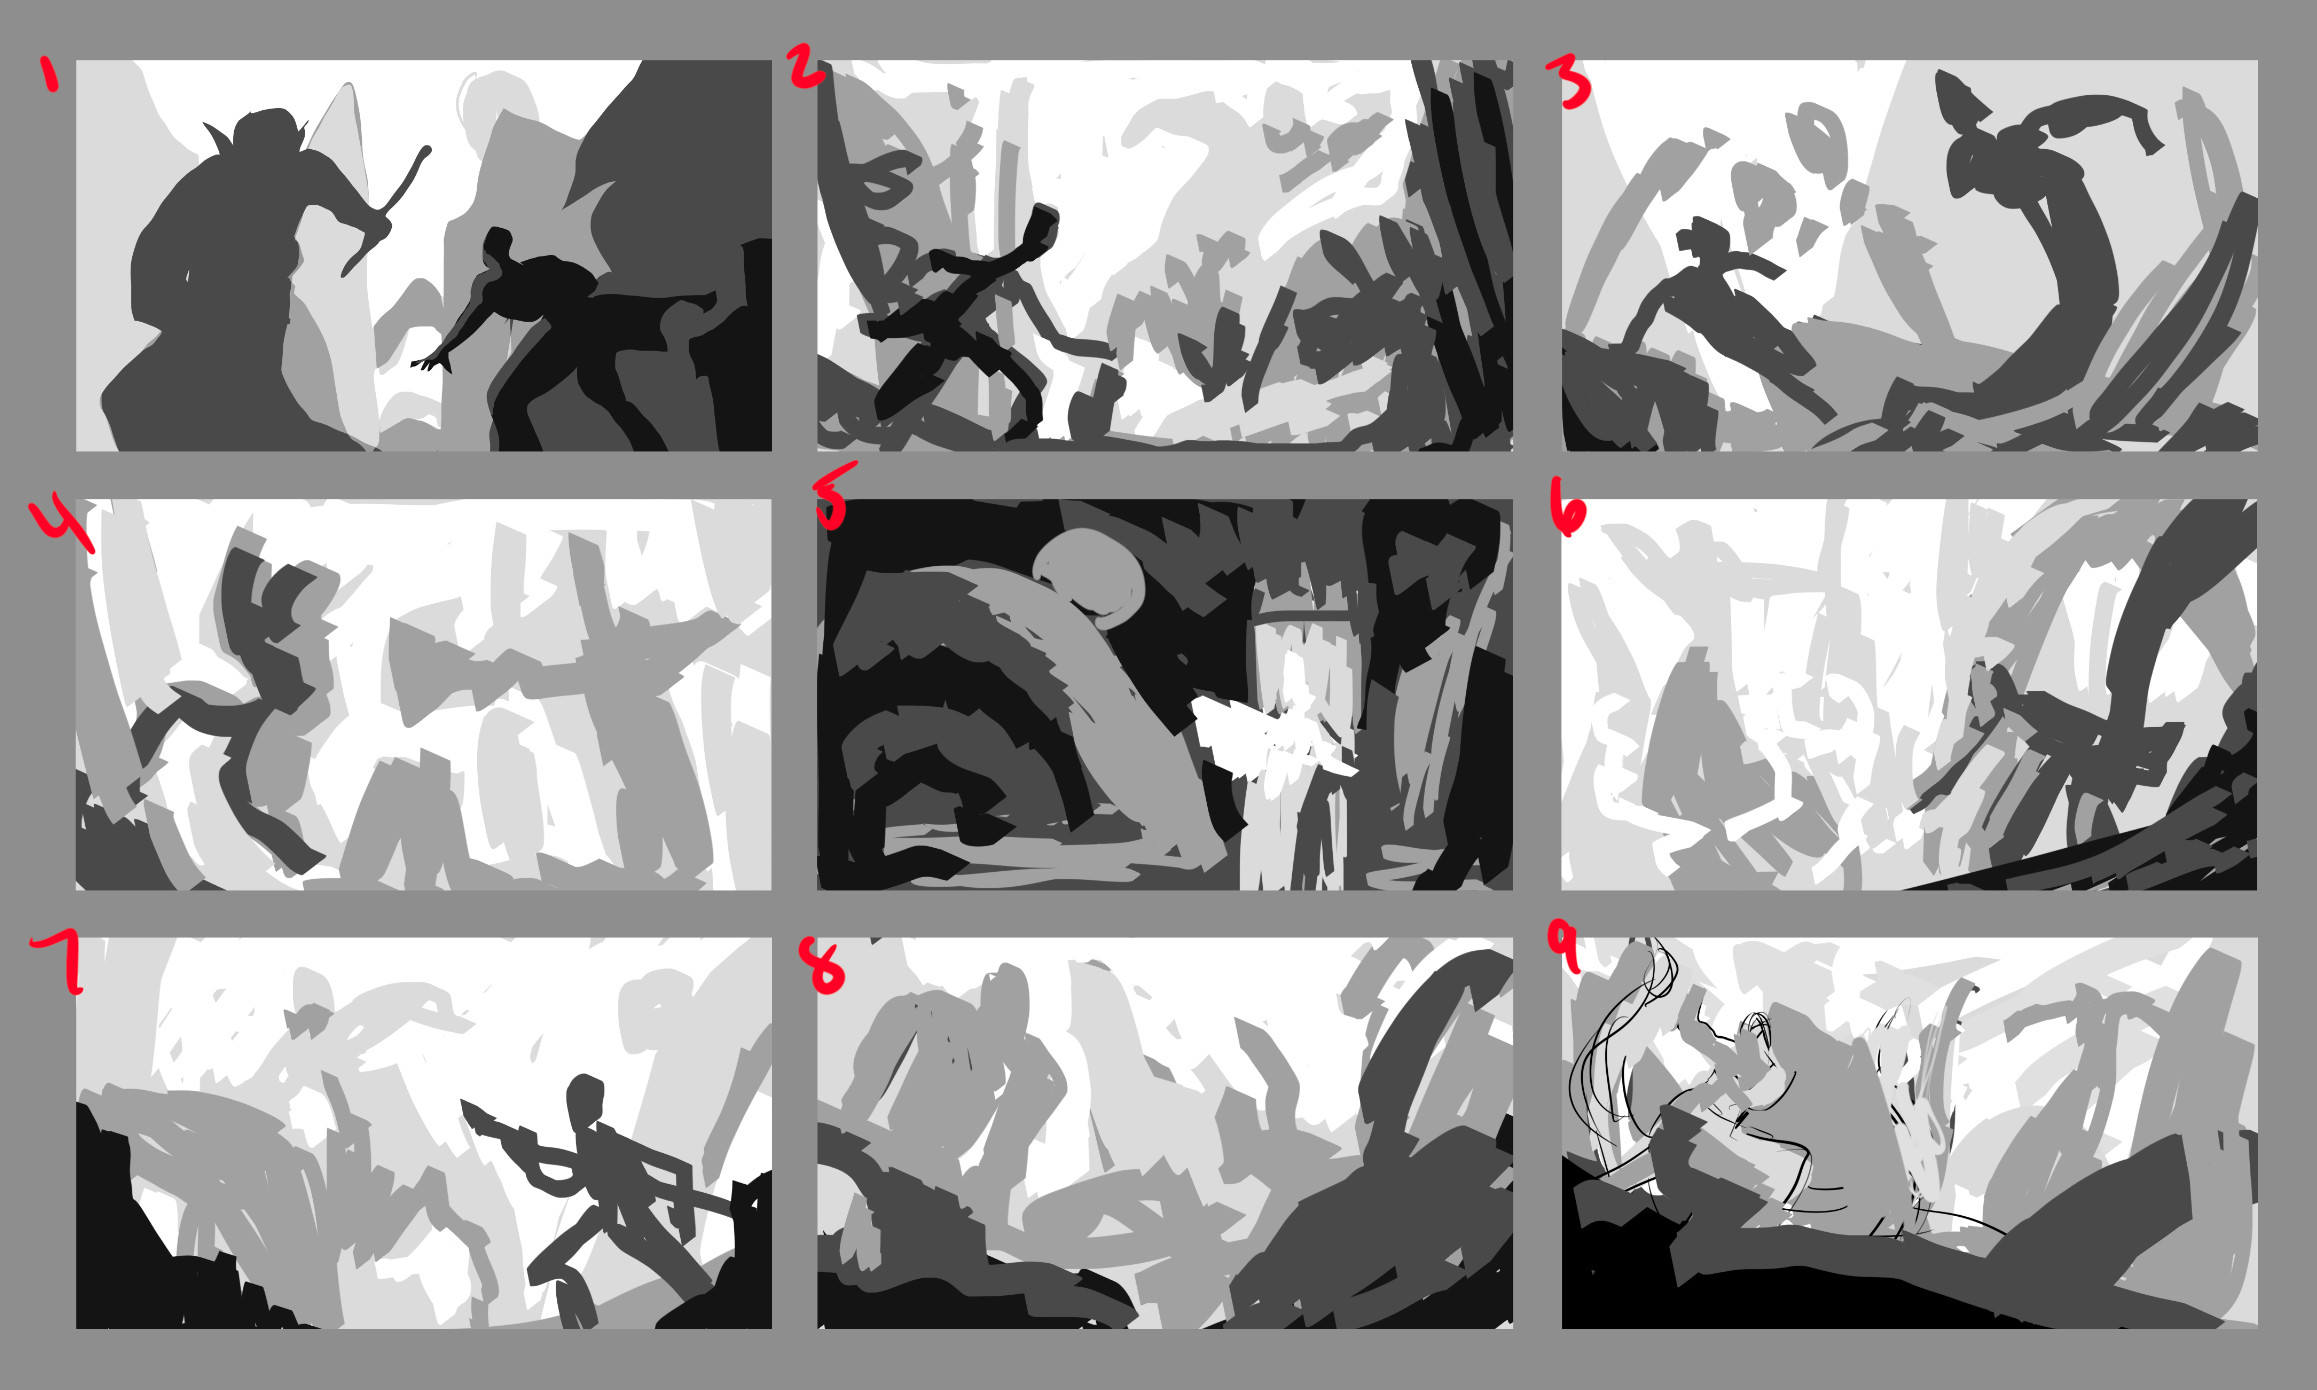 9 different thumbnails I was exploring for this revised version!  I ended up going with a mixture between 2 and 3.